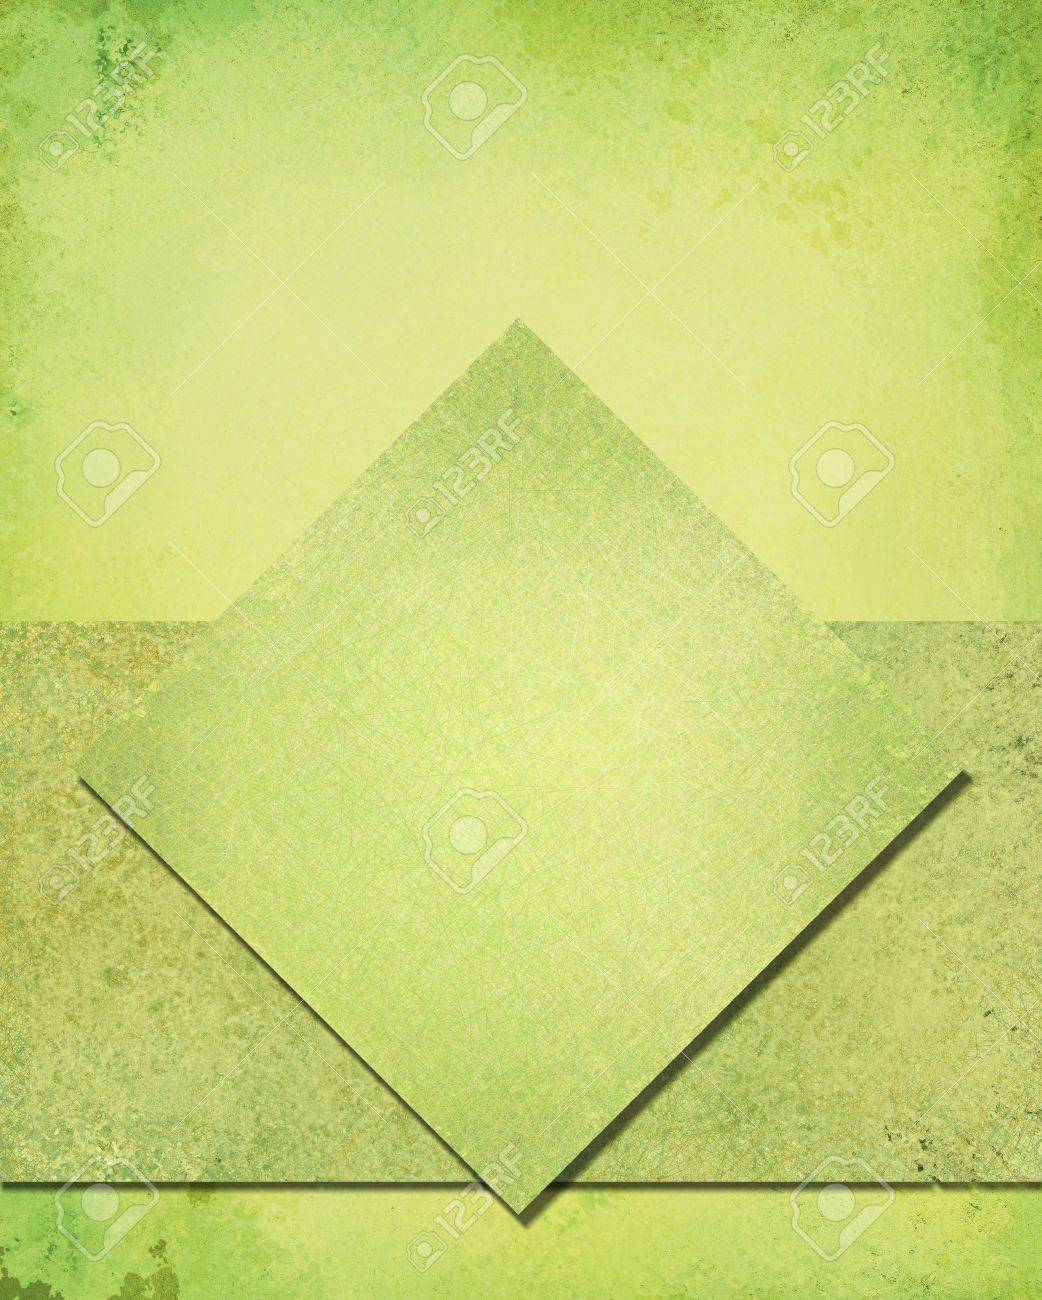 layered abstract green background layout design with diamond square and rough stripe shape layer with vintage grunge background texture, lime green color sponge paint, green Christmas background color Stock Photo - 22559207